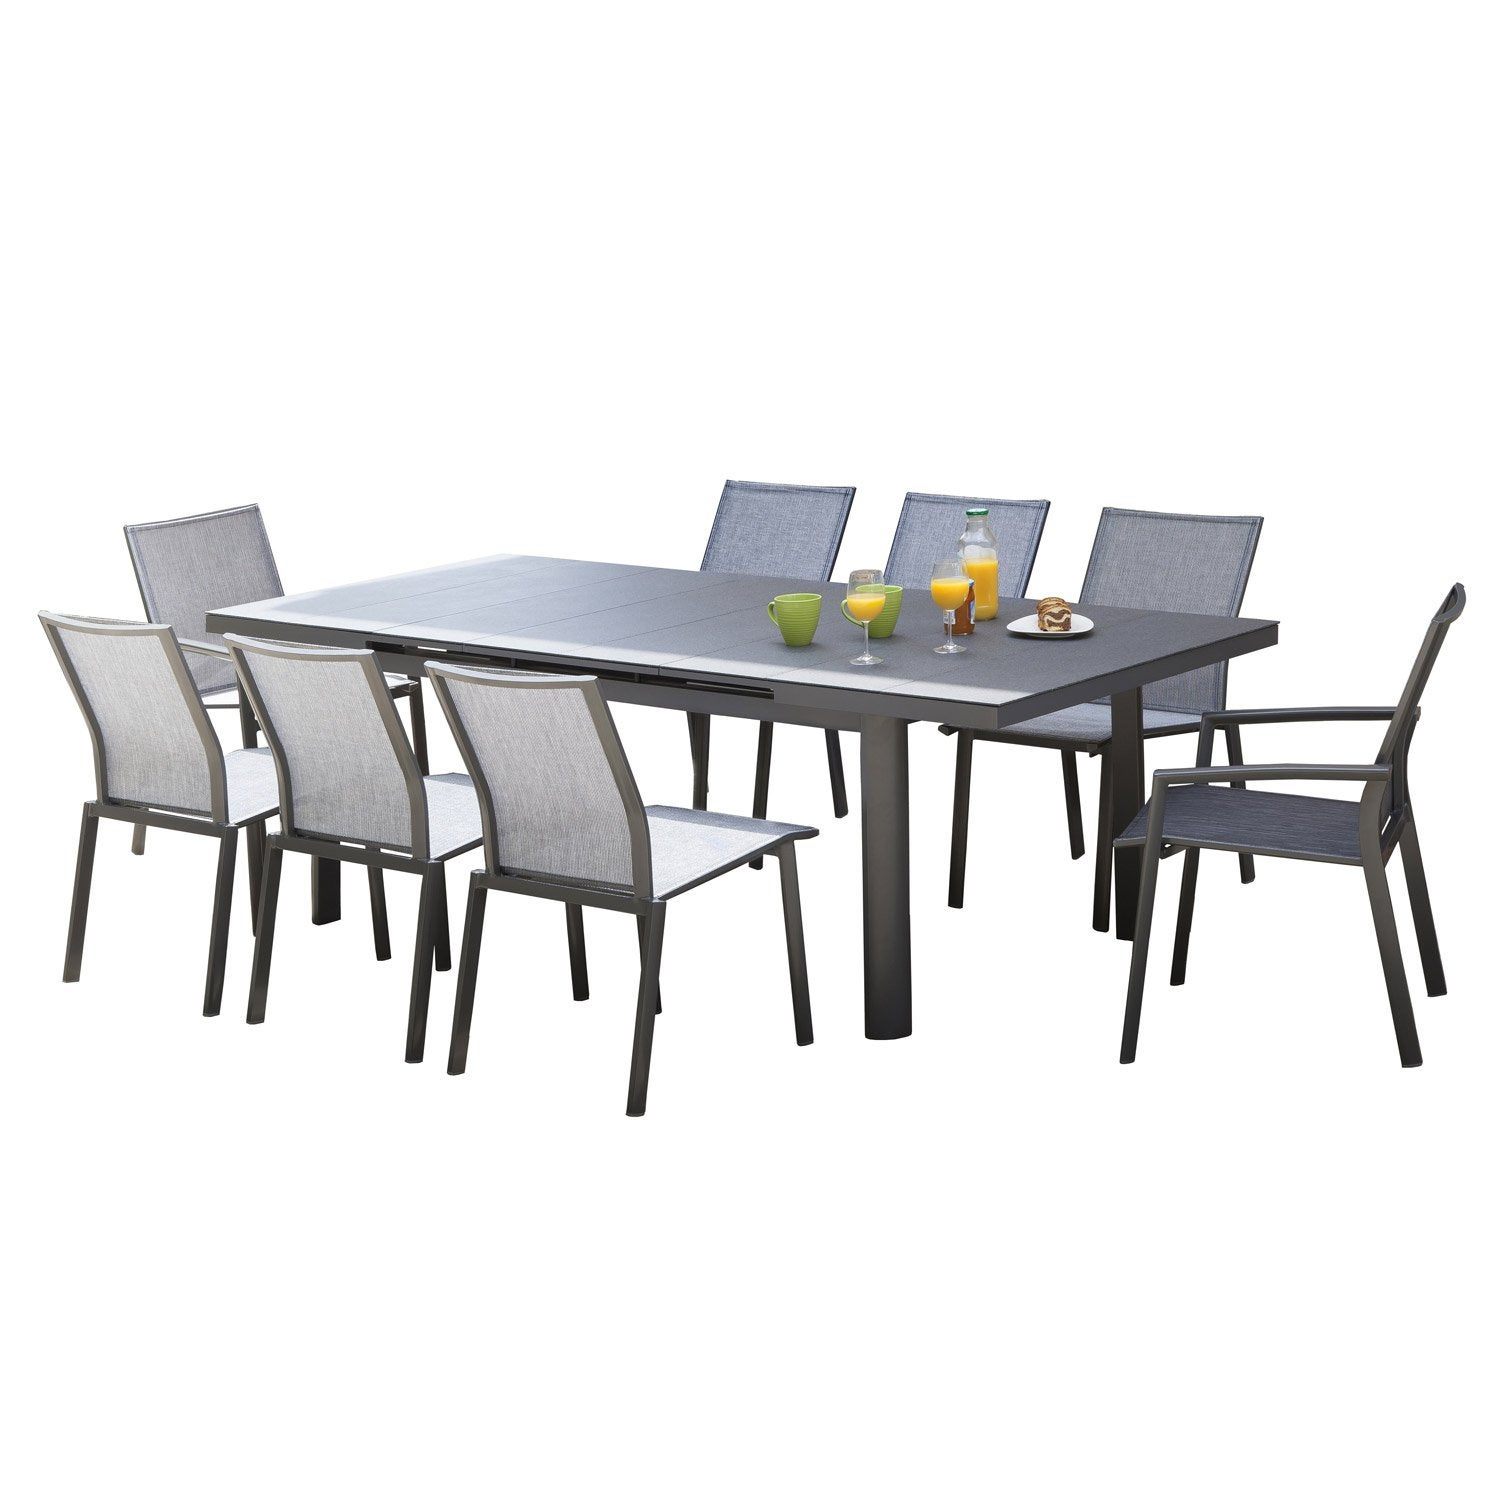 table de jardin bora rectangulaire gris 8 personnes. Black Bedroom Furniture Sets. Home Design Ideas